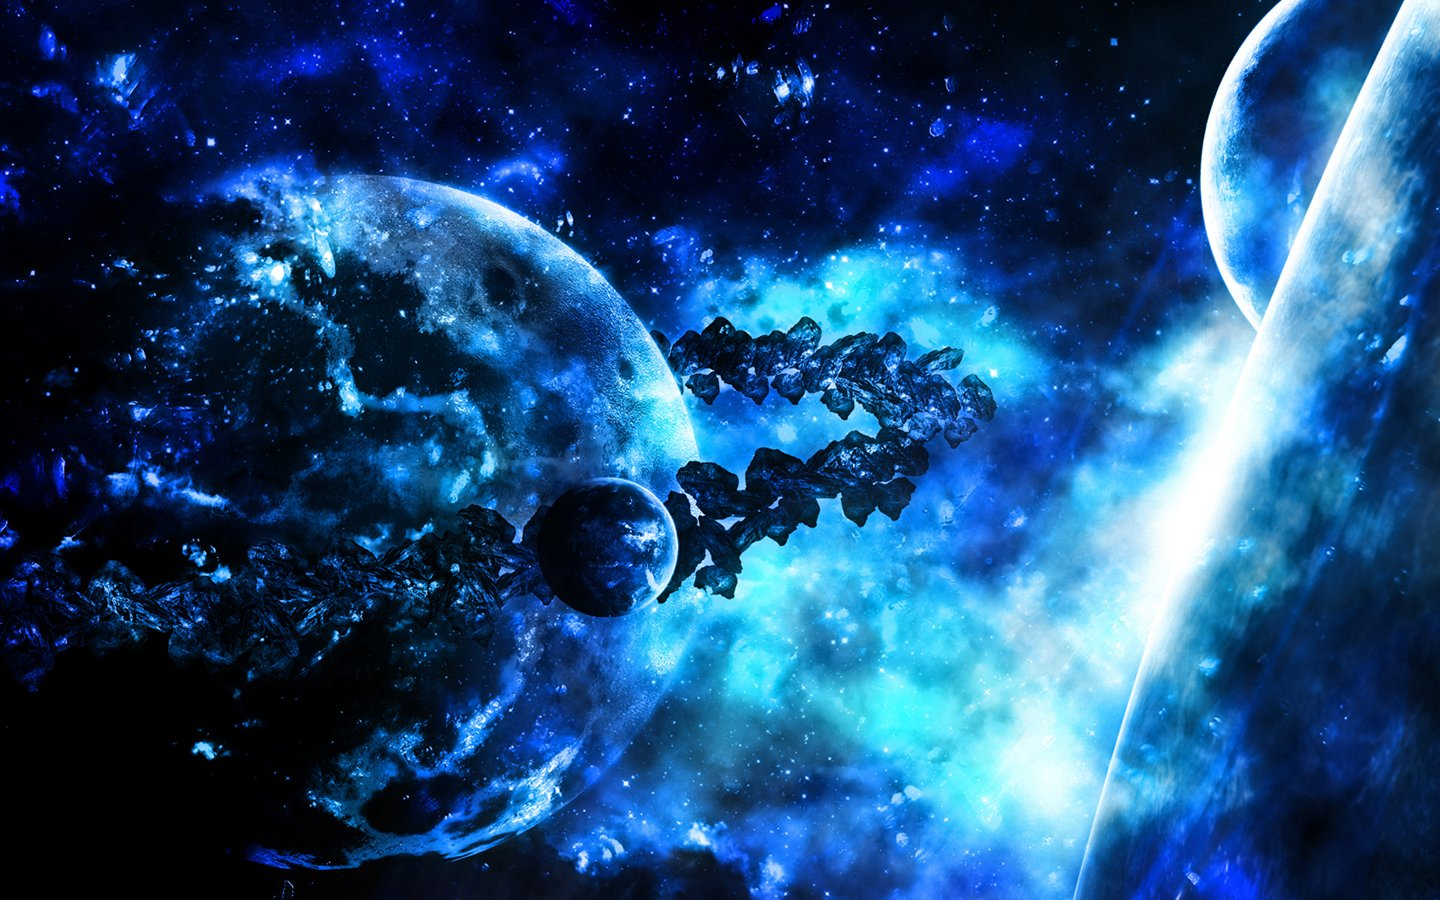 Galaxy Space Live Wallpapers Hd By Narendra Doriya: Space Live Wallpapers For Desktop